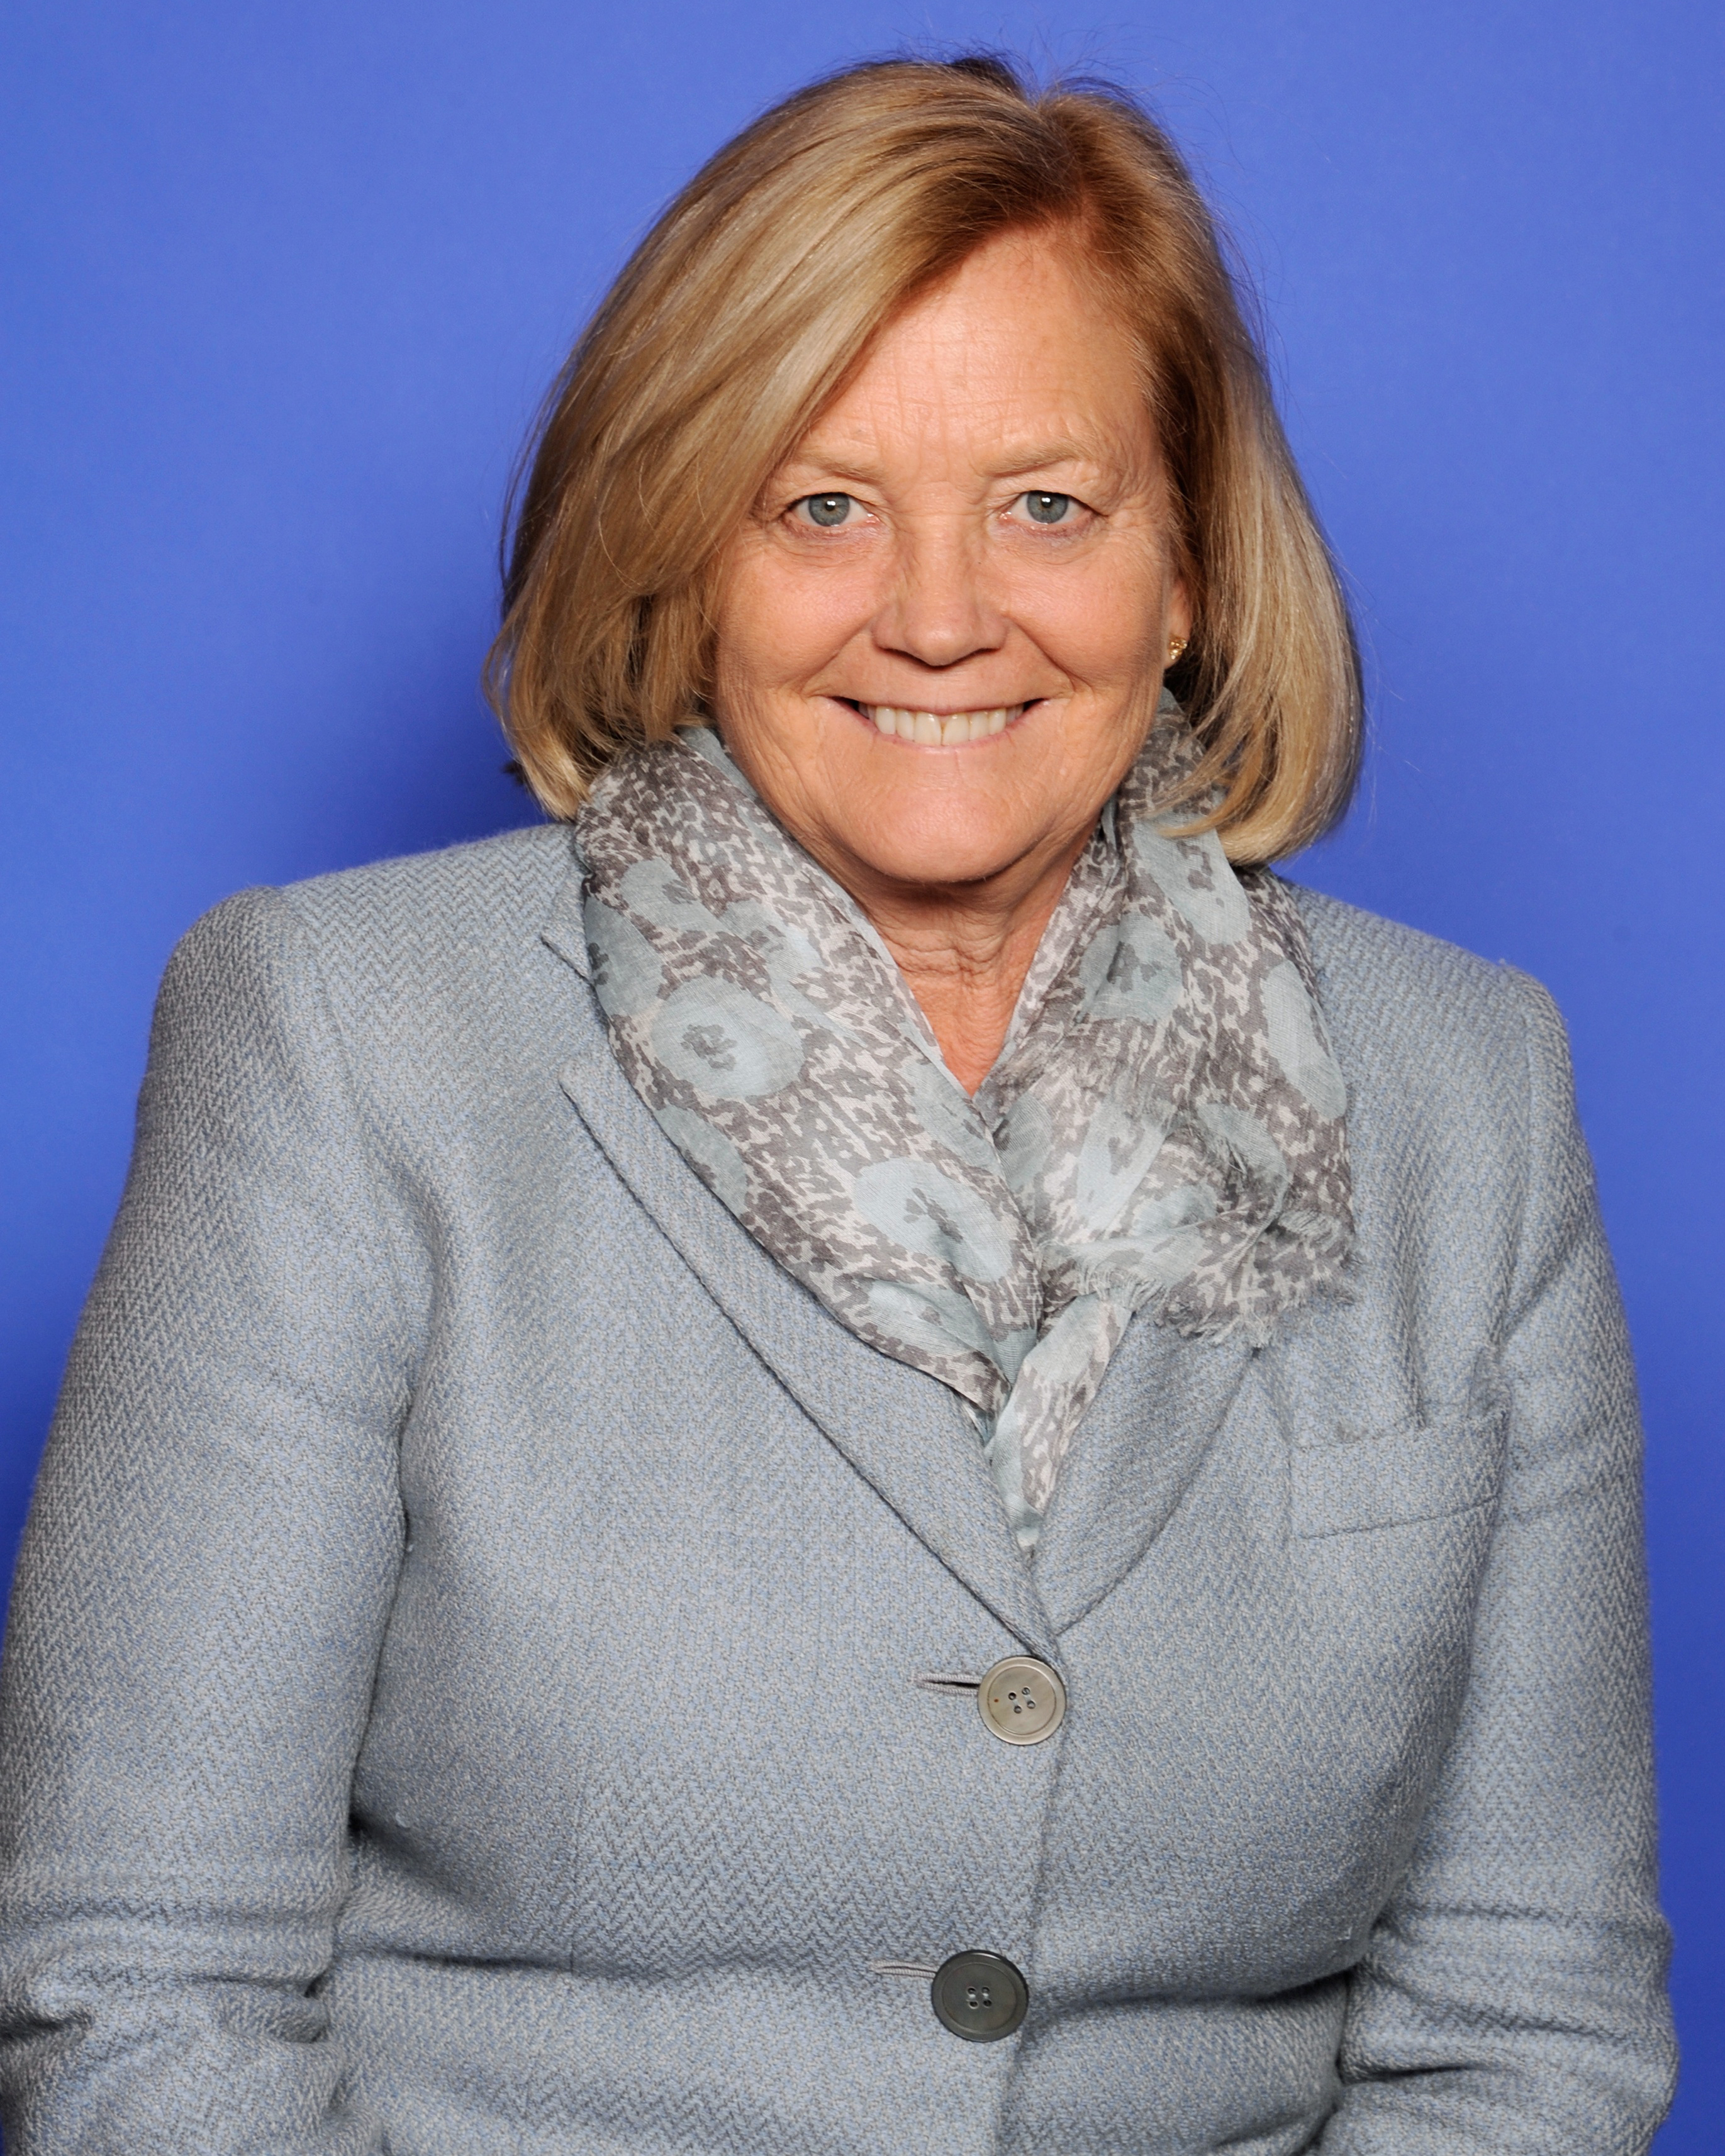 Chellie Pingree Wikipedia